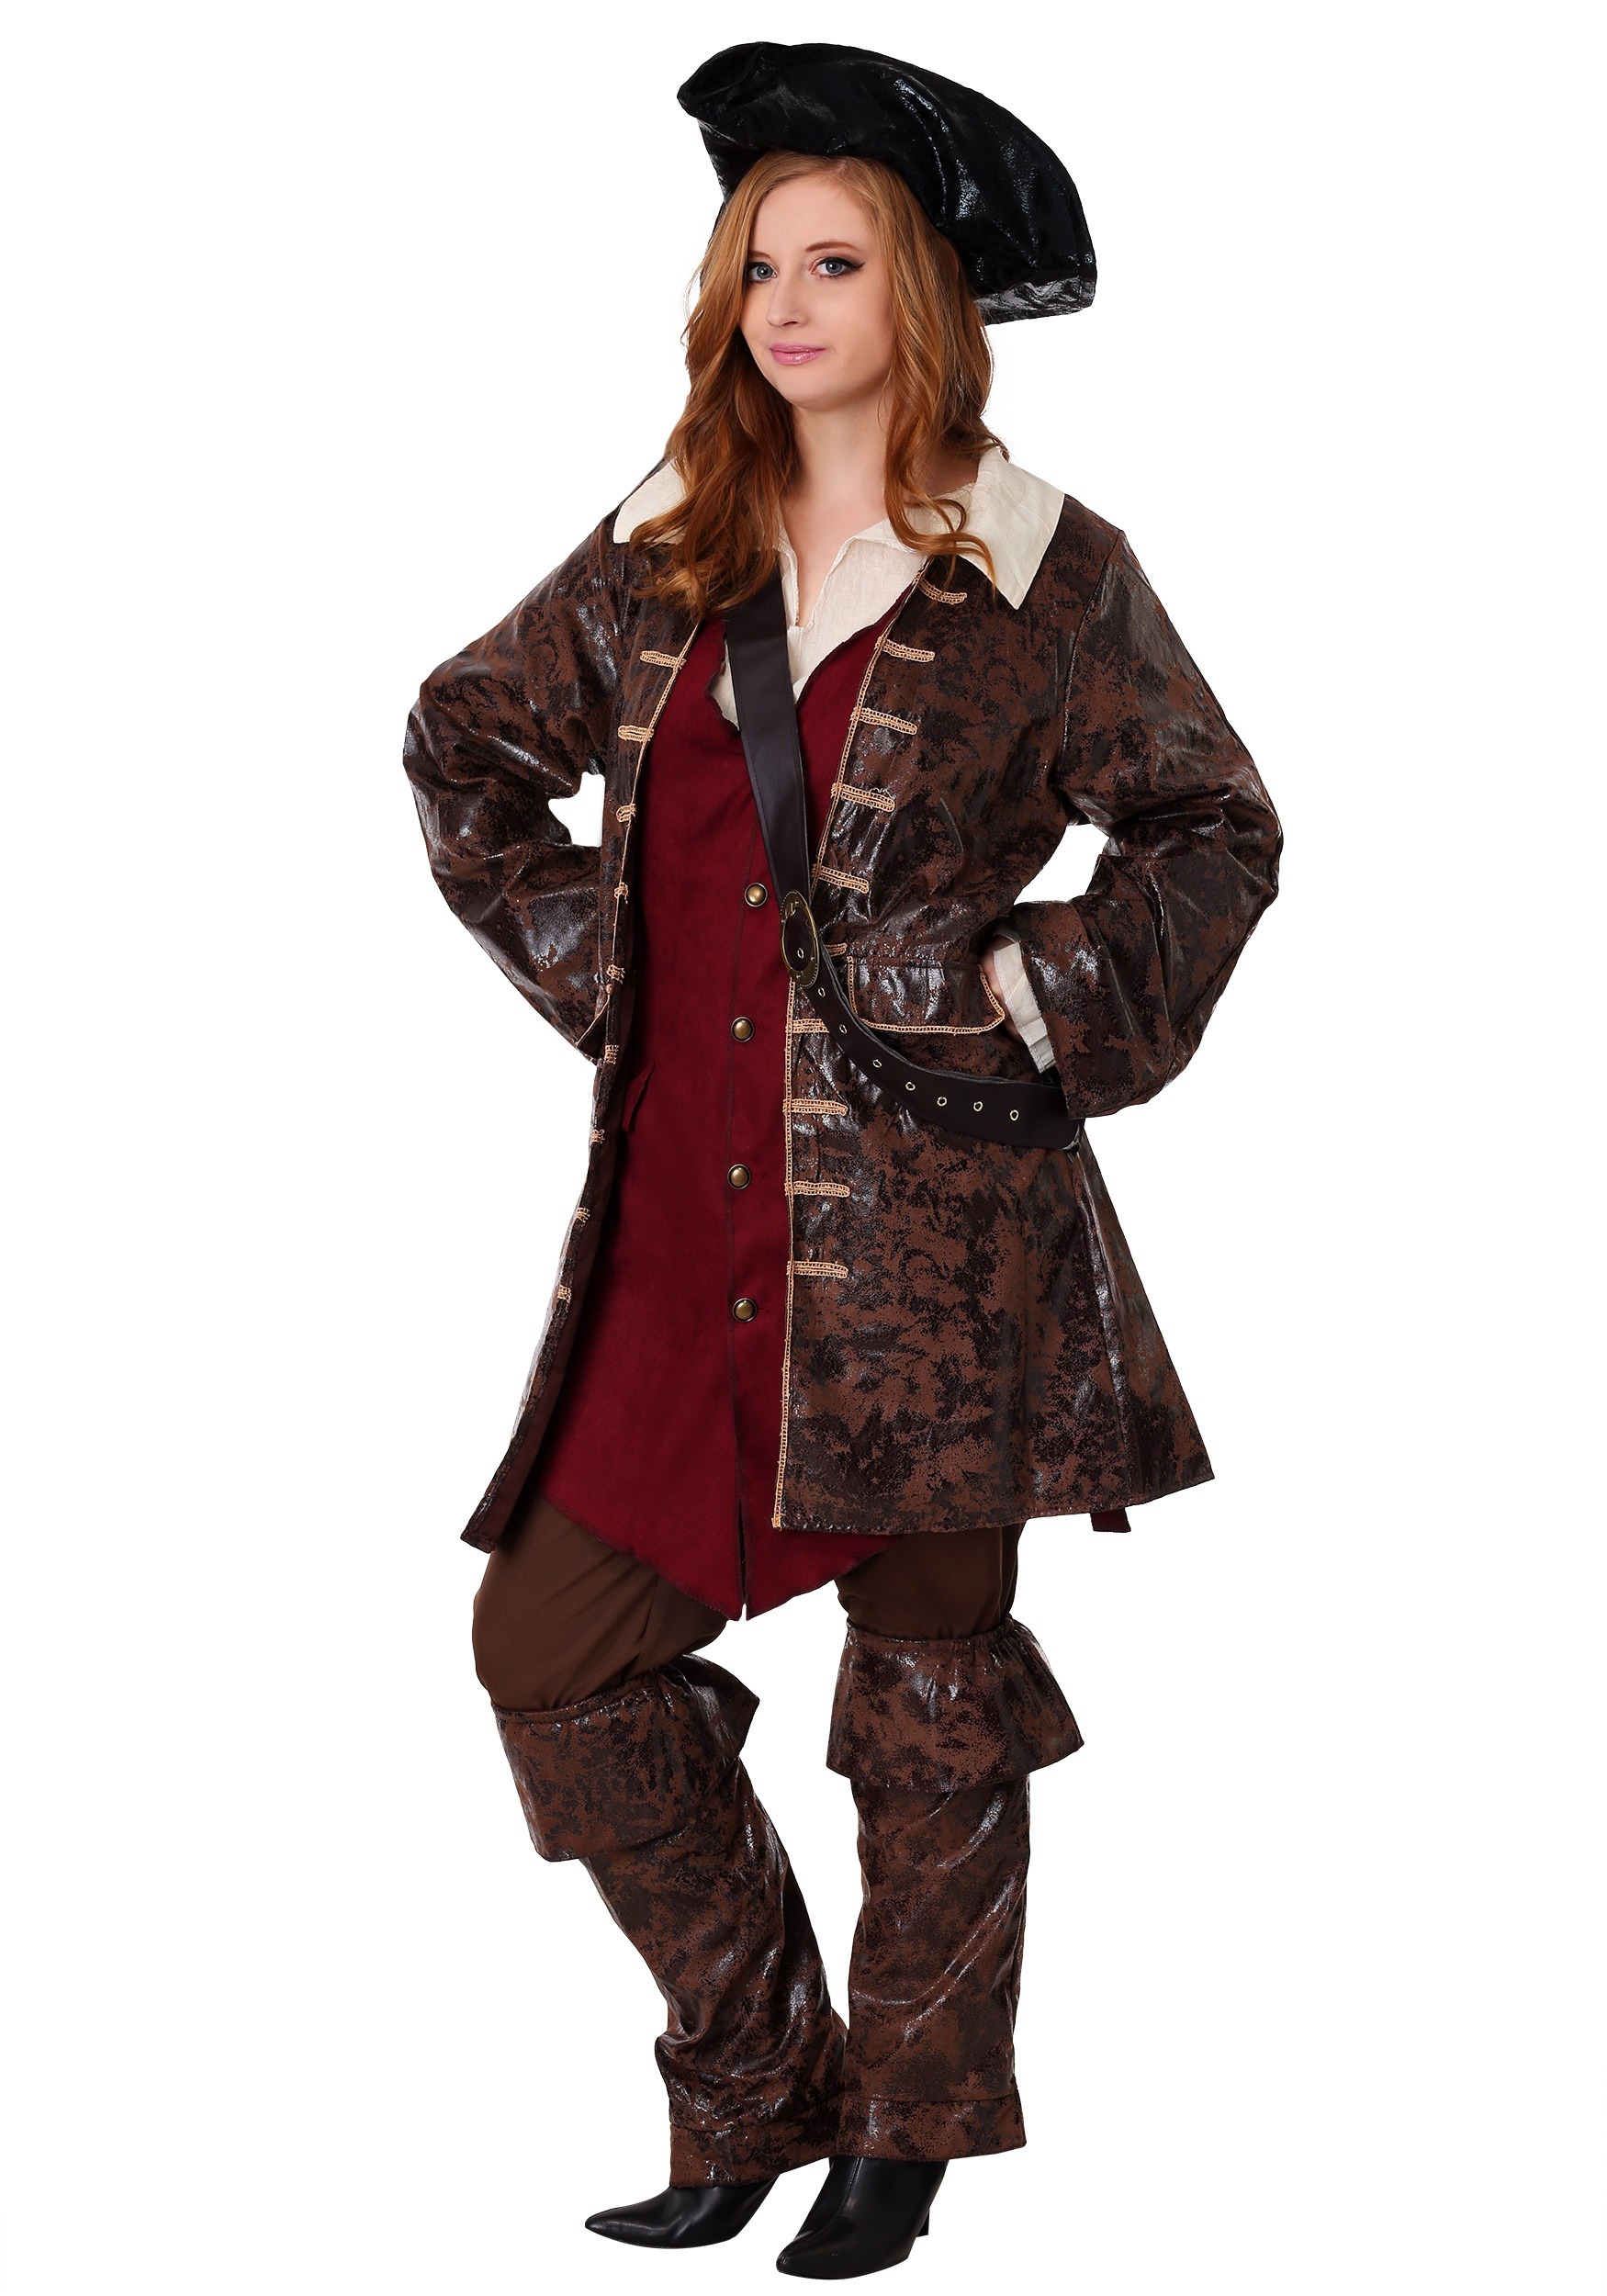 Caribbean Pirate Plus Size Costume for Women